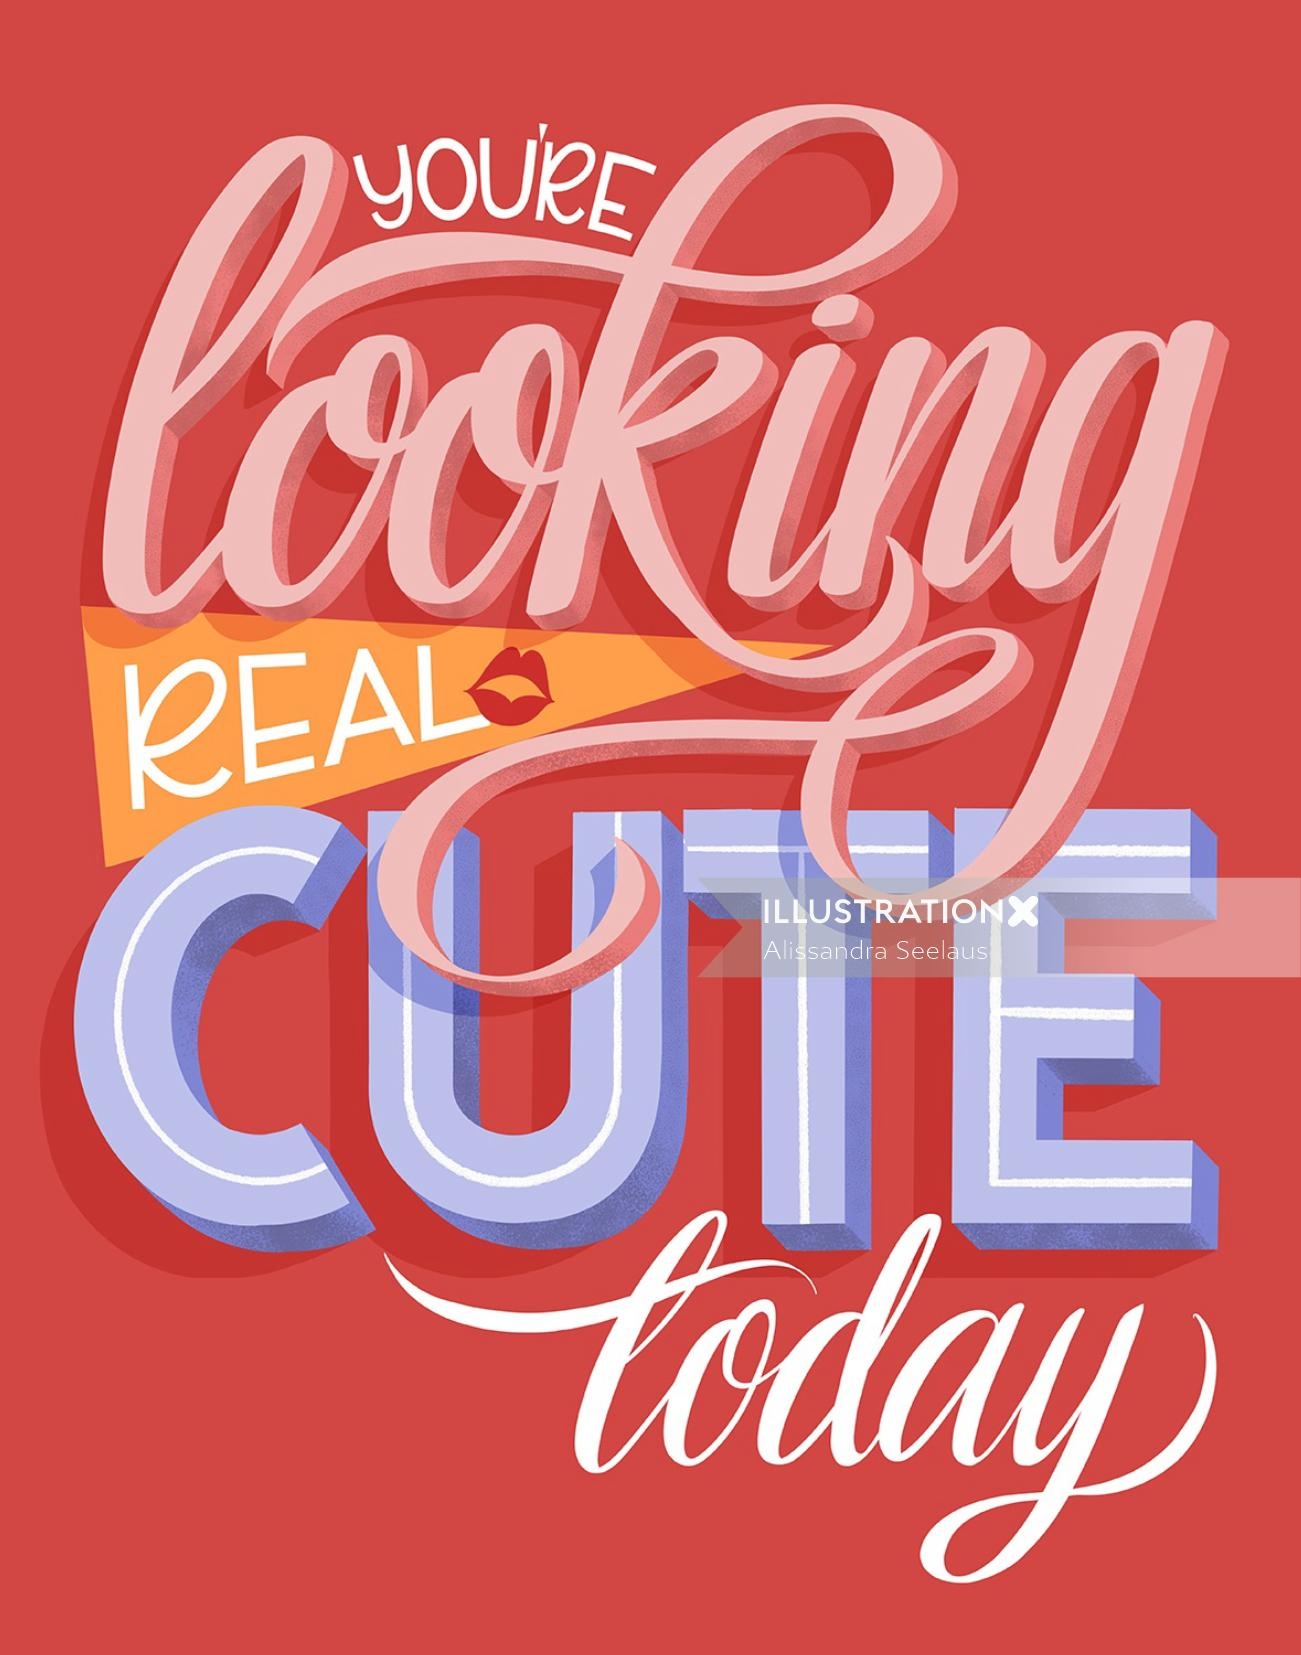 Your looking really cute today